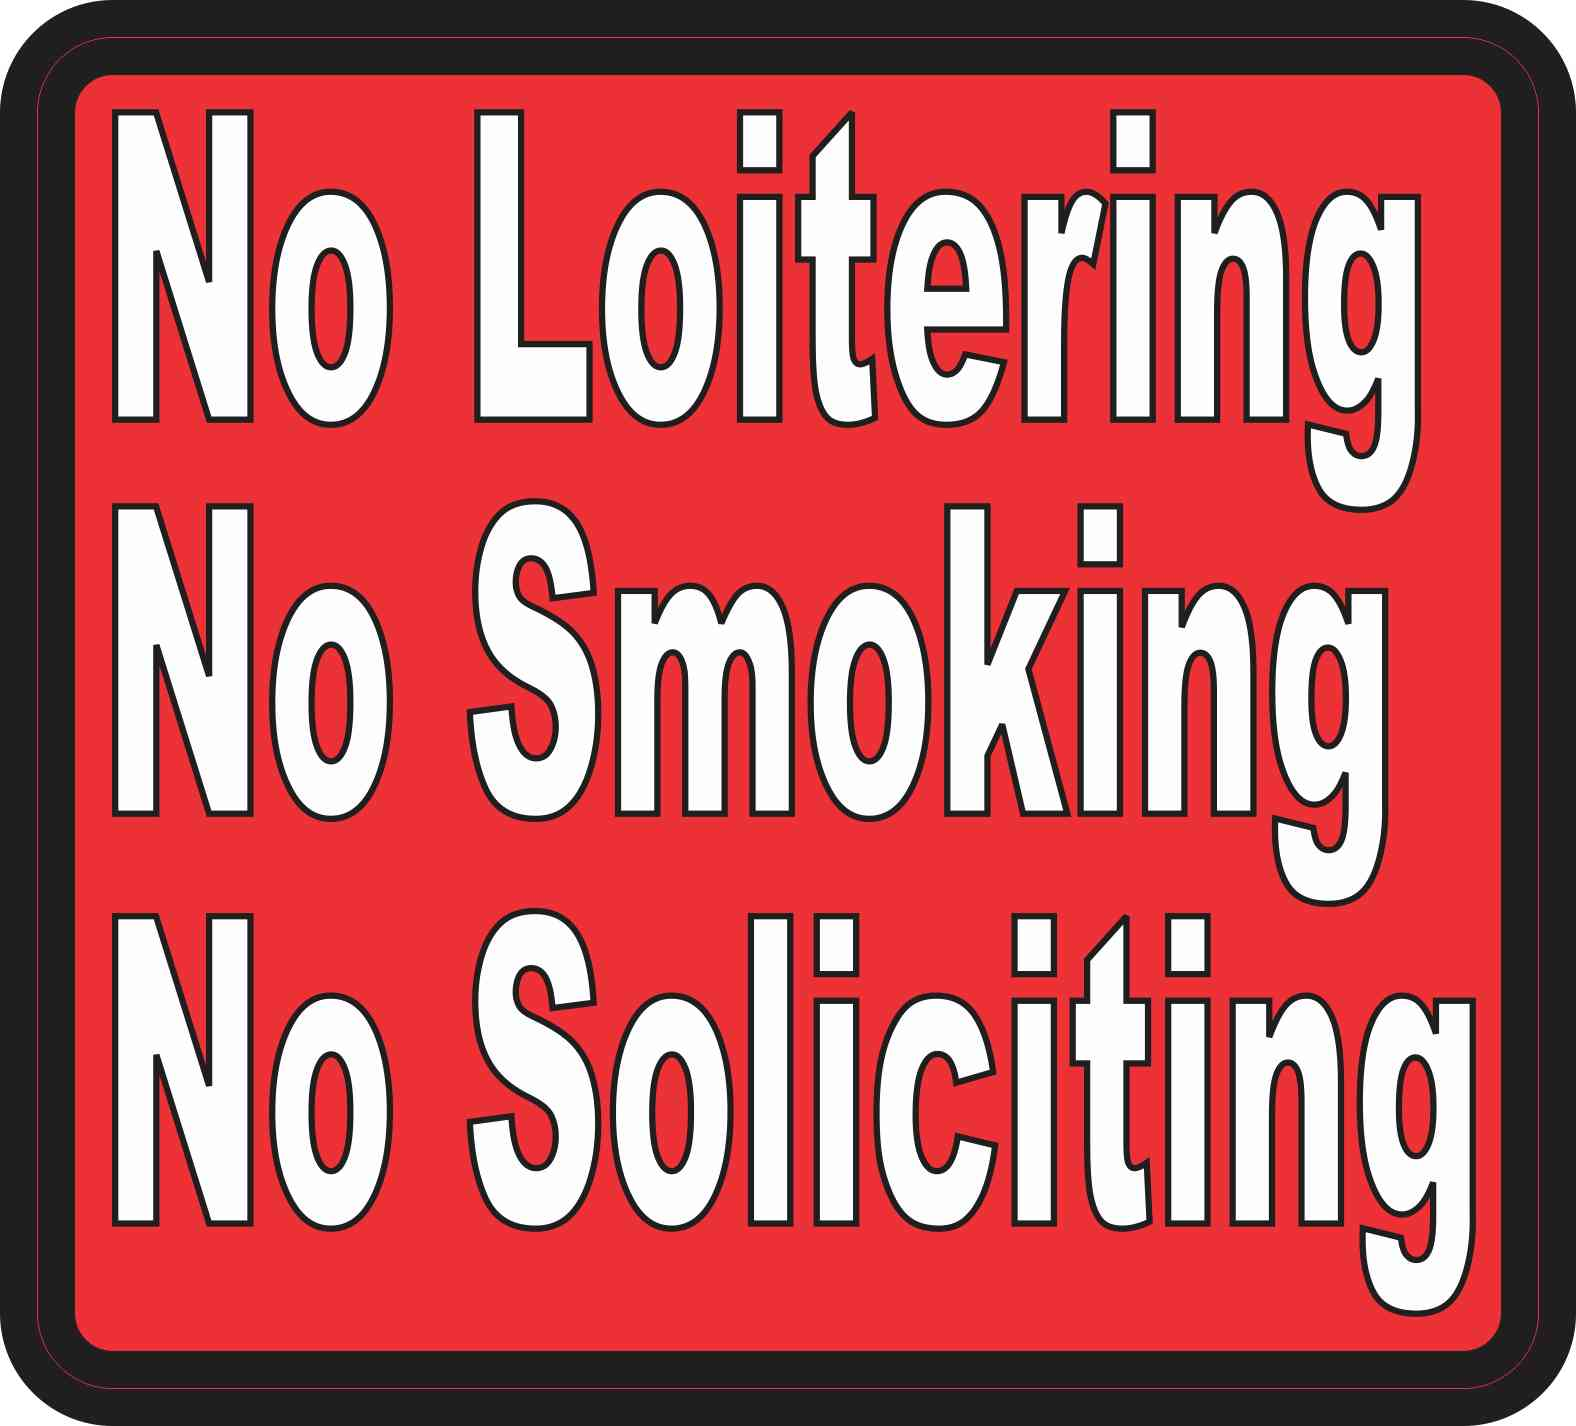 No Soliciting Sticker